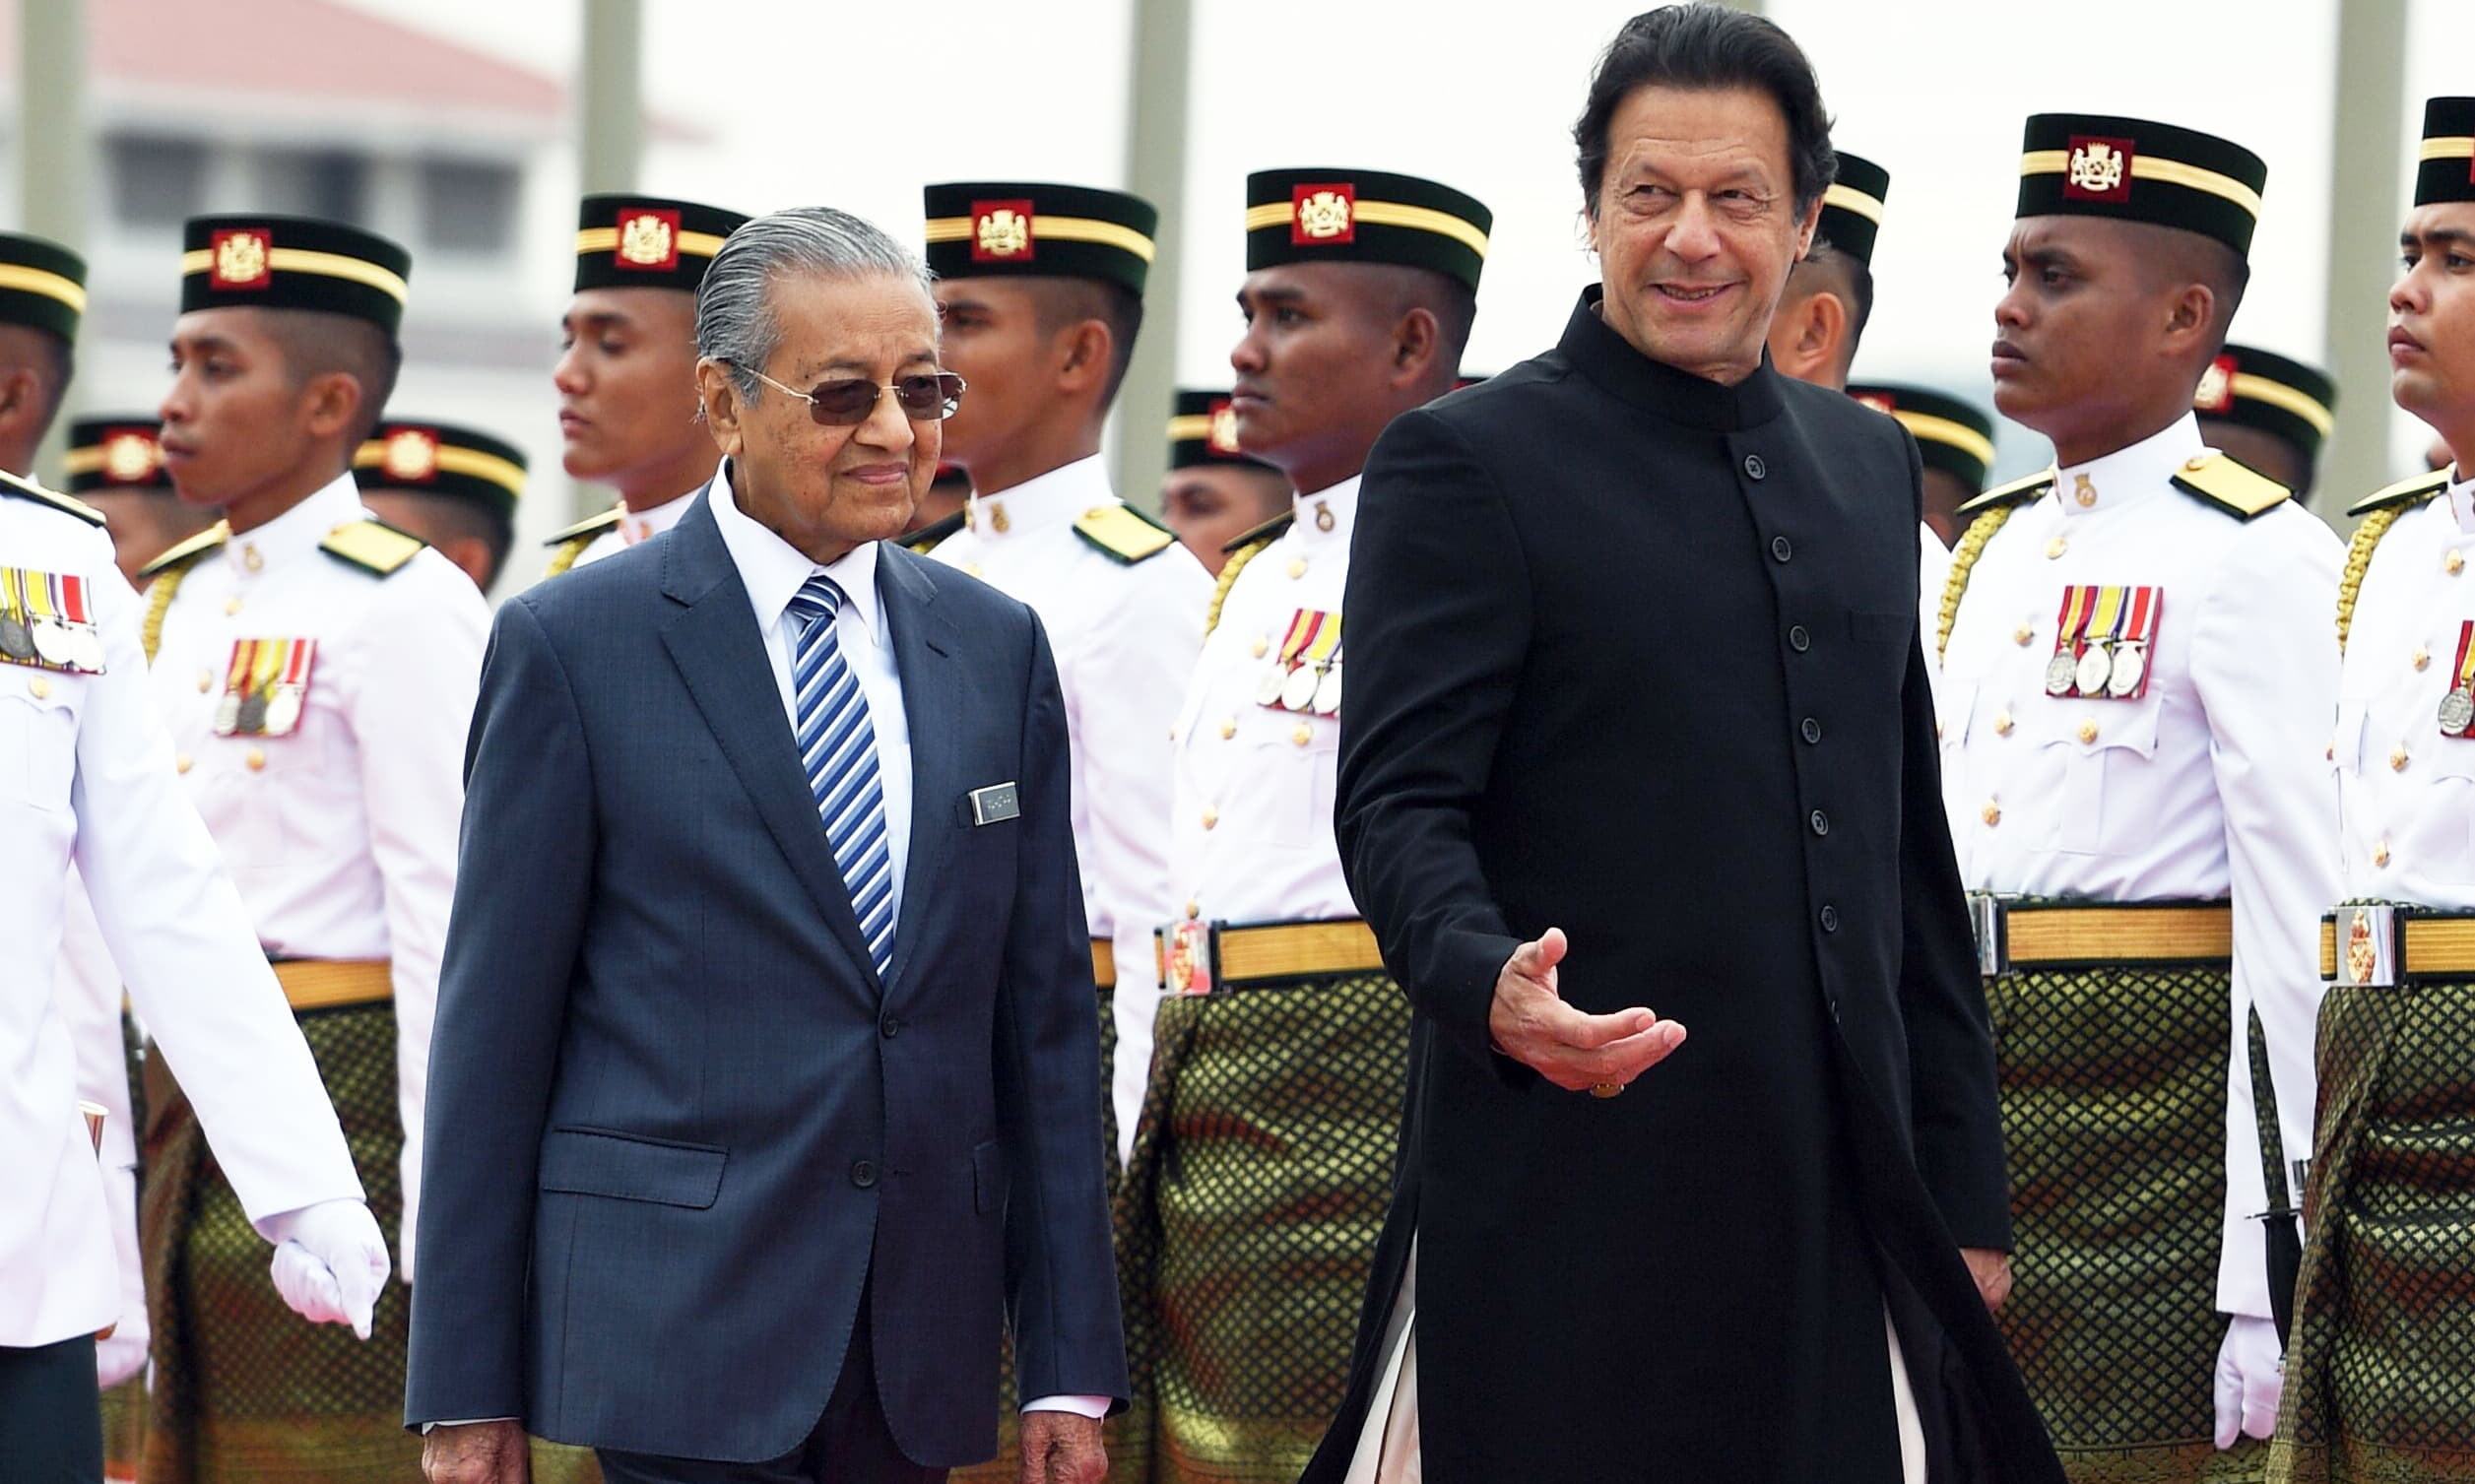 PM Imran Khan speaks to his Malaysian counterpart Mahathir Mohamad during a welcoming ceremony in Putrajaya. —AFP